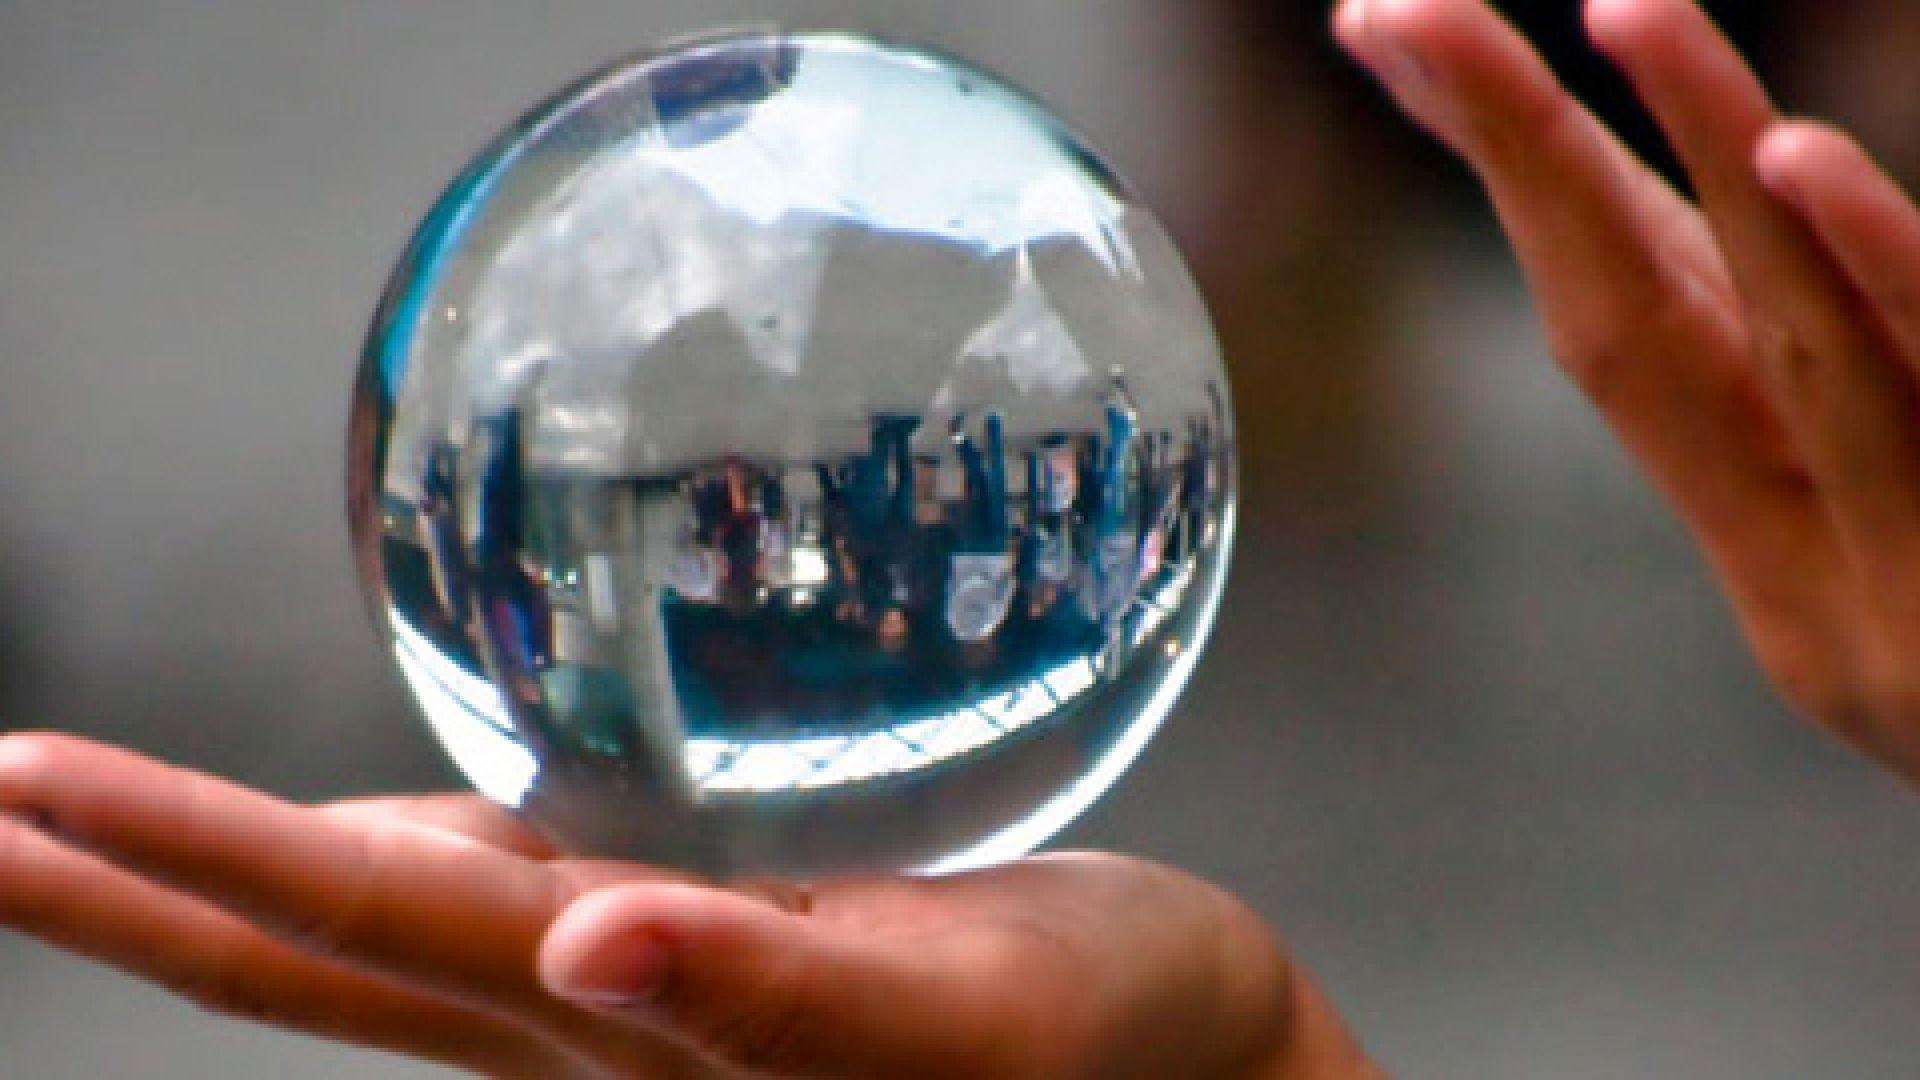 8 Predictions for Private Companies in 2013